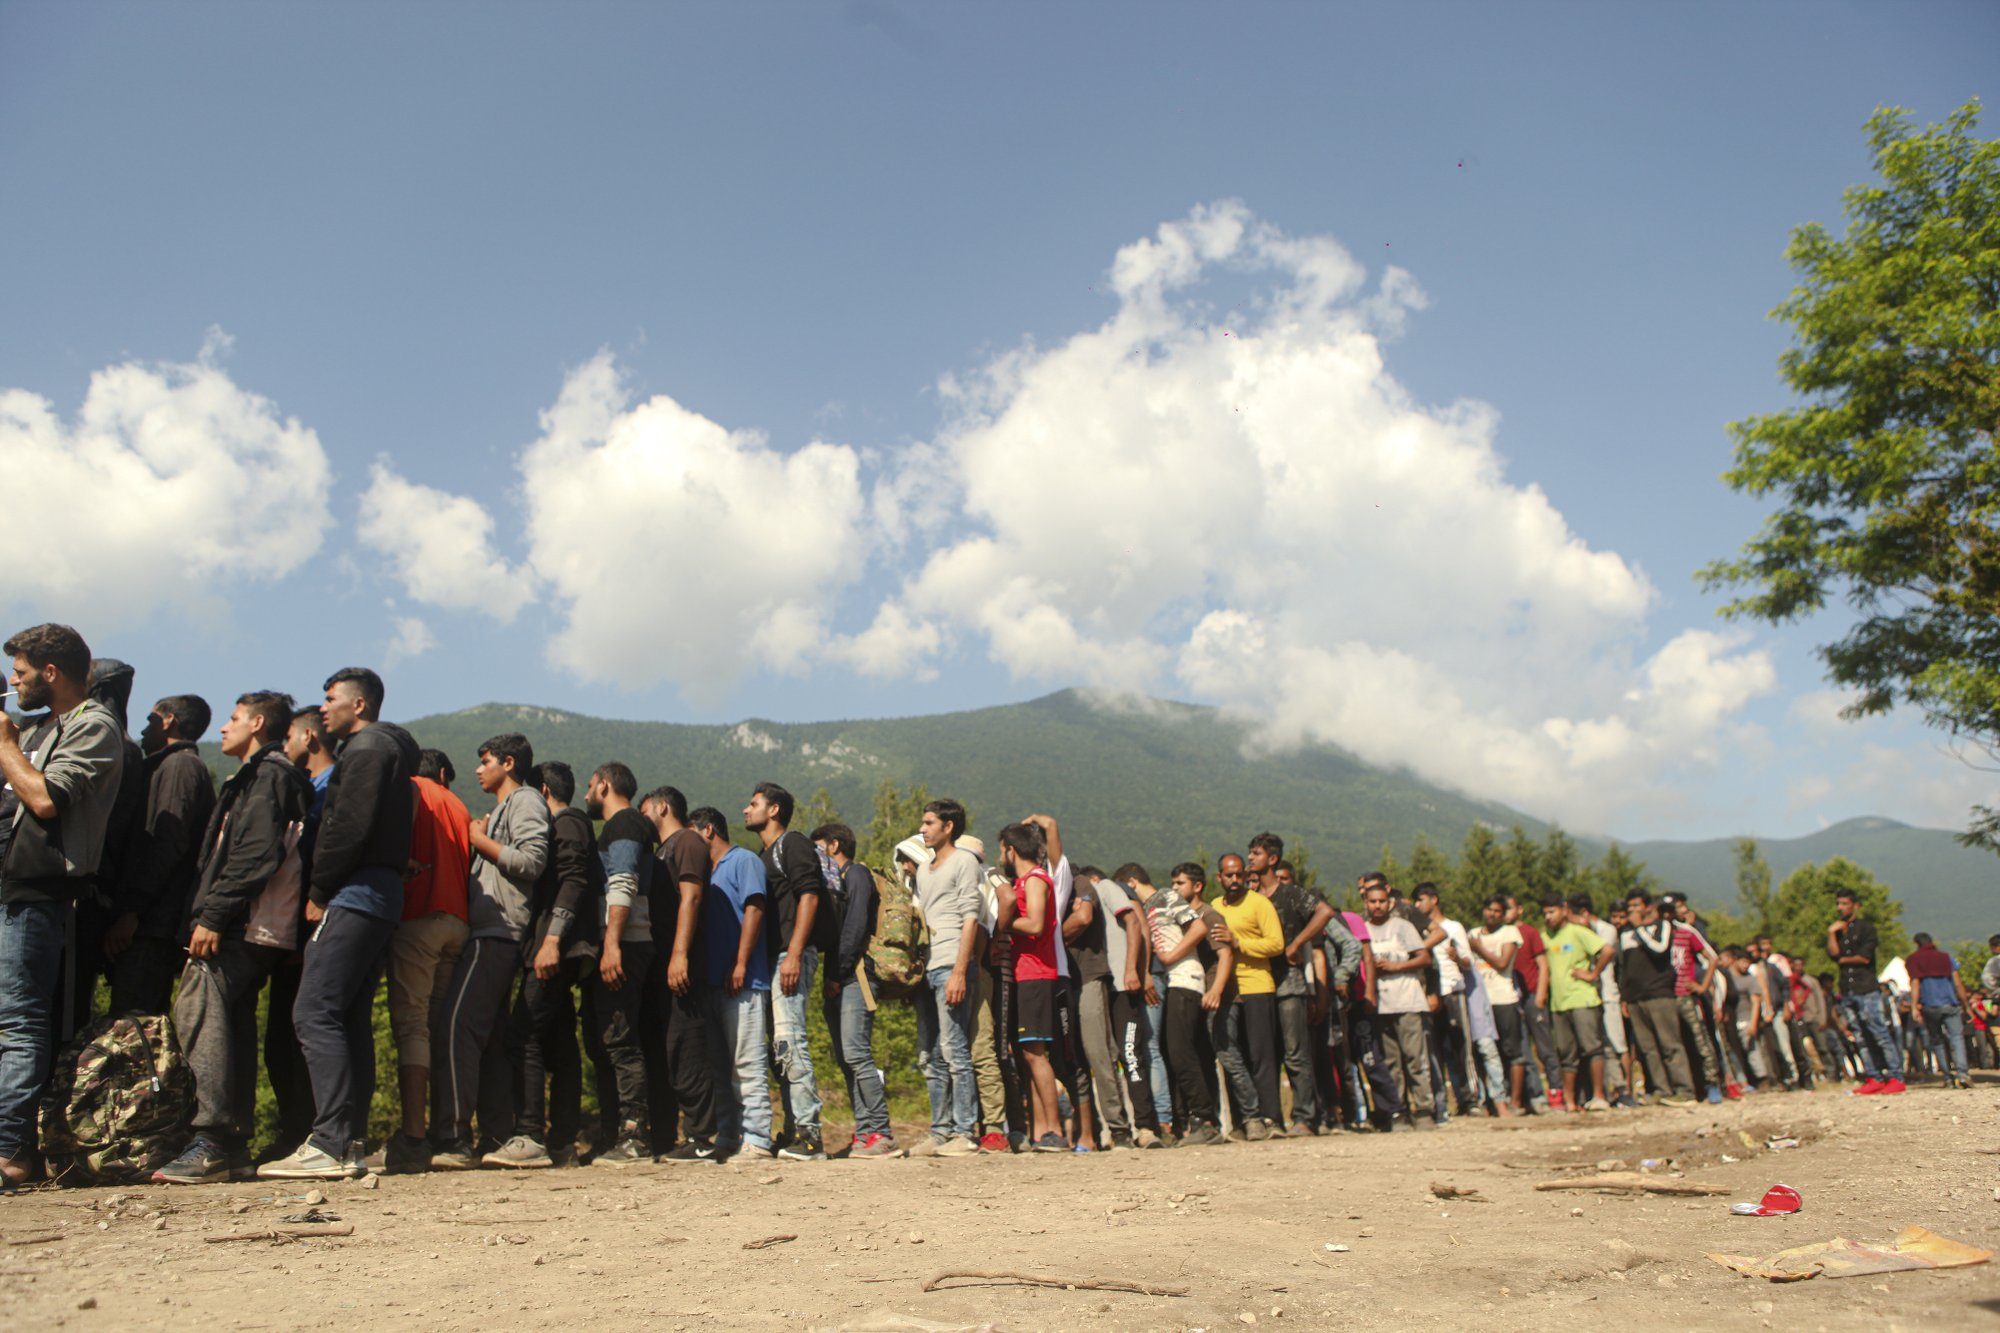 Bosnian authorities round up migrants amid crisis warnings